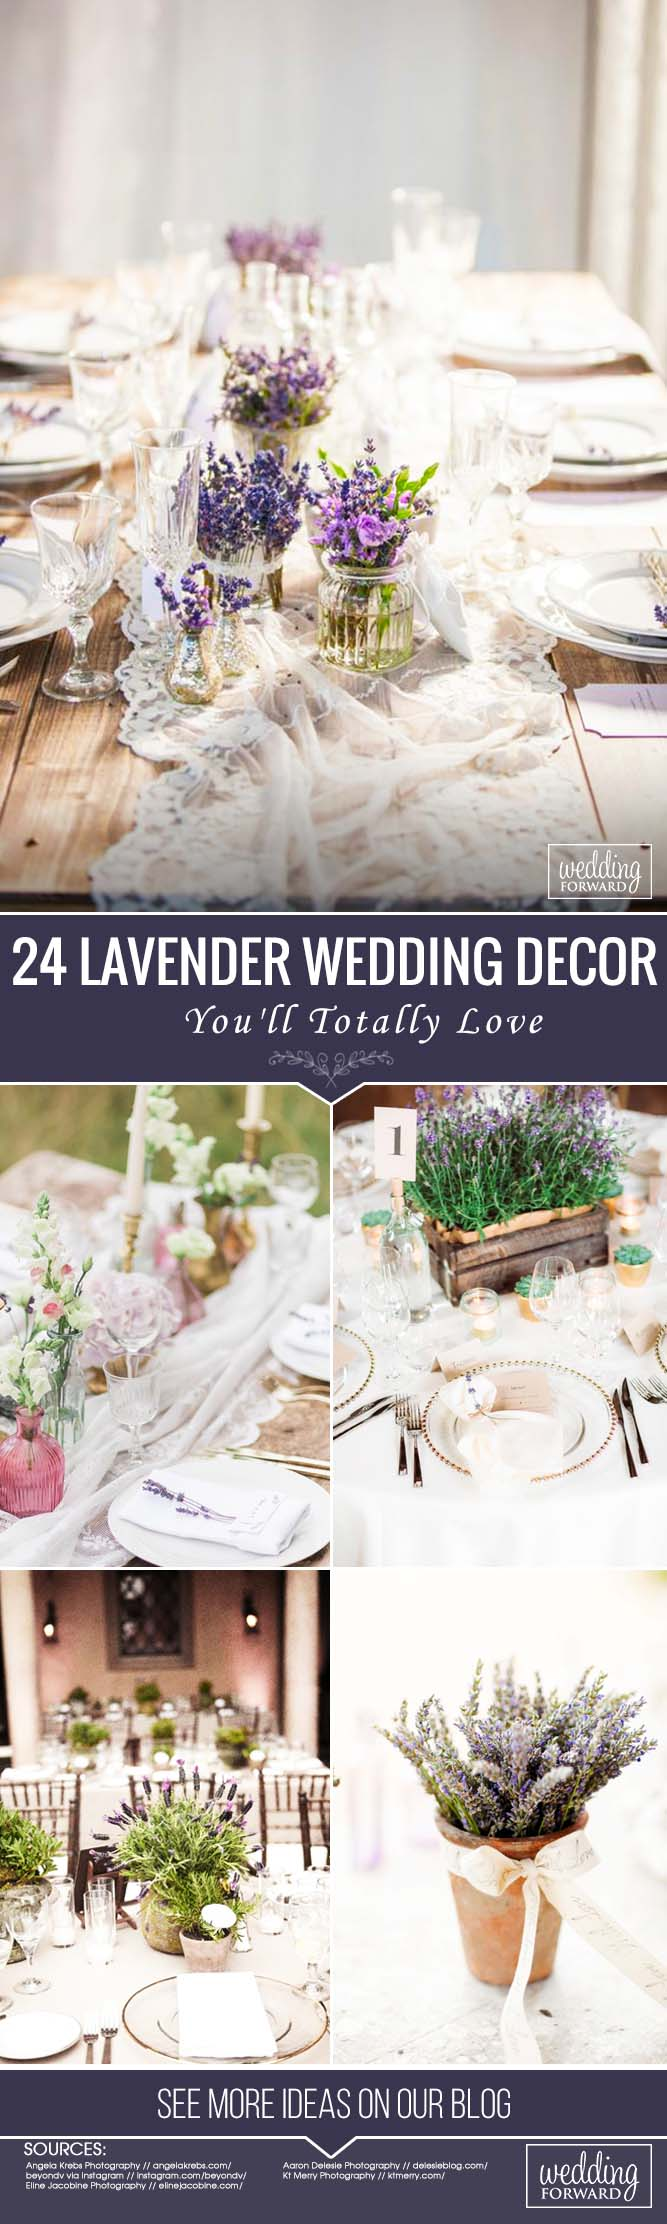 Lavender wedding decor ideas   Lavender Wedding Decor Ideas Youull Totally Love  Lavender